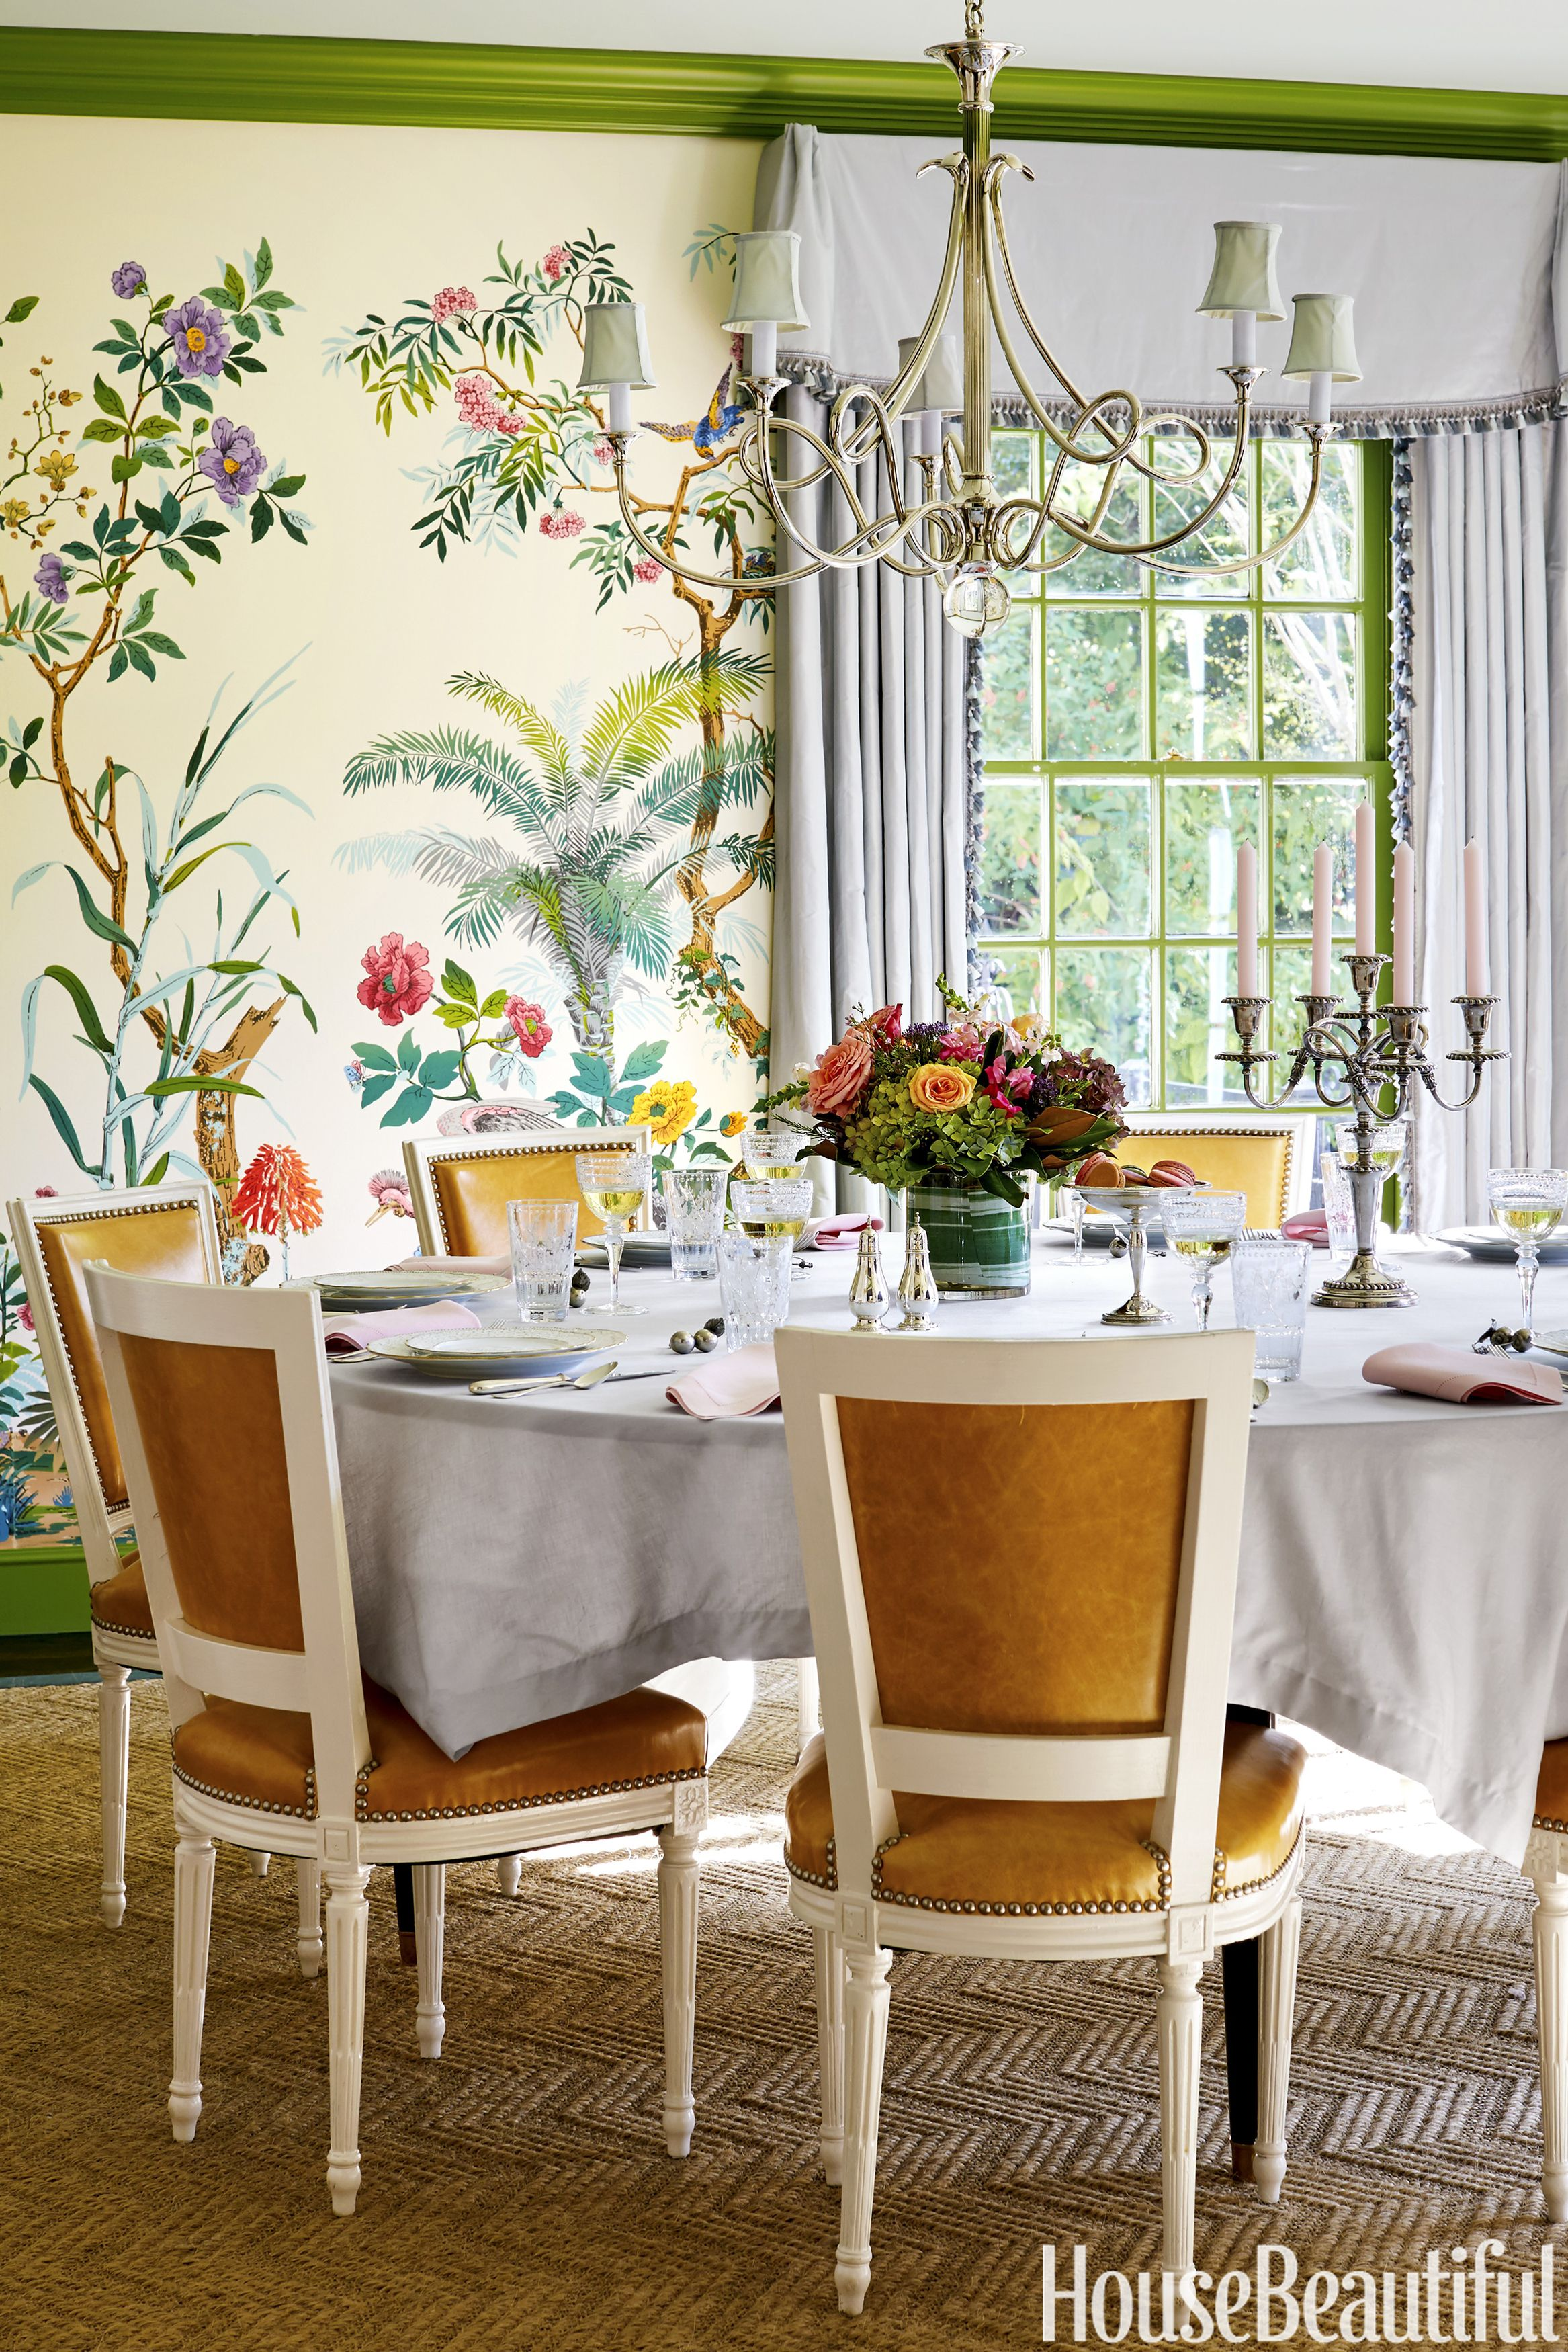 Charming The Dining Room Now Bursts With High Octane Design, From The Zuber  Wallpaper To. House Beautiful